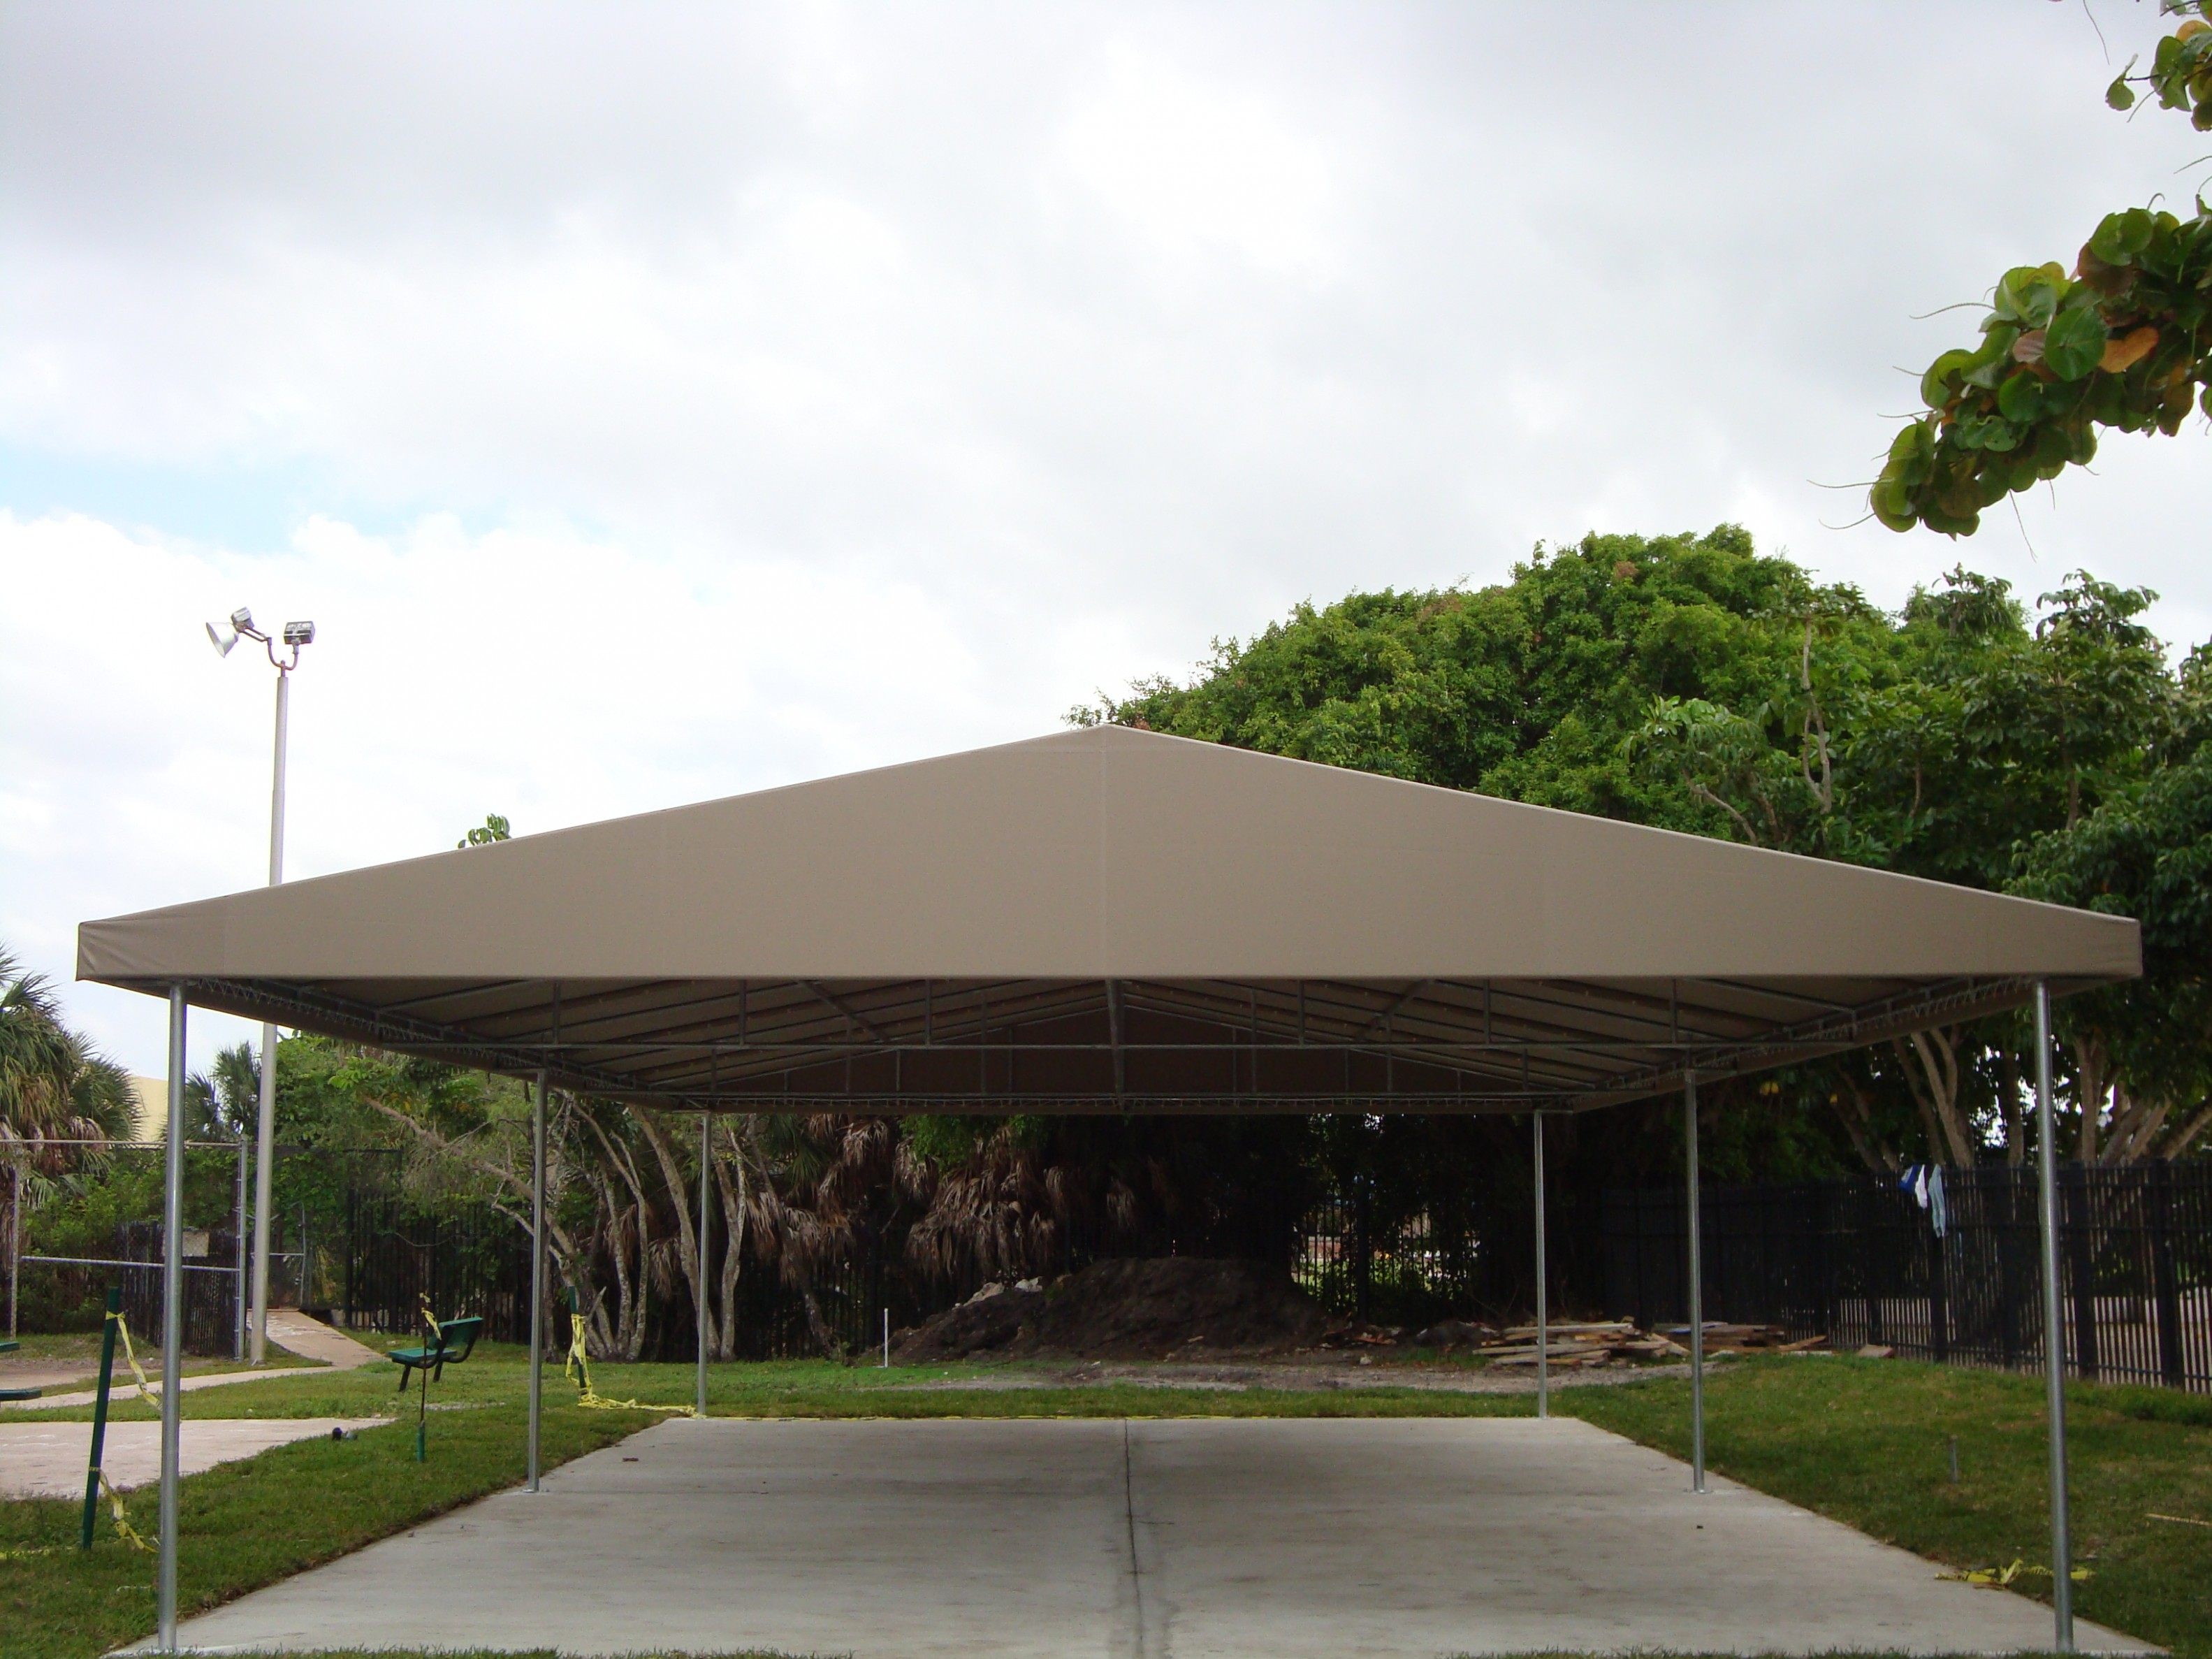 9 Brilliant Ways To Advertise Carports And Awnings   carports and awnings